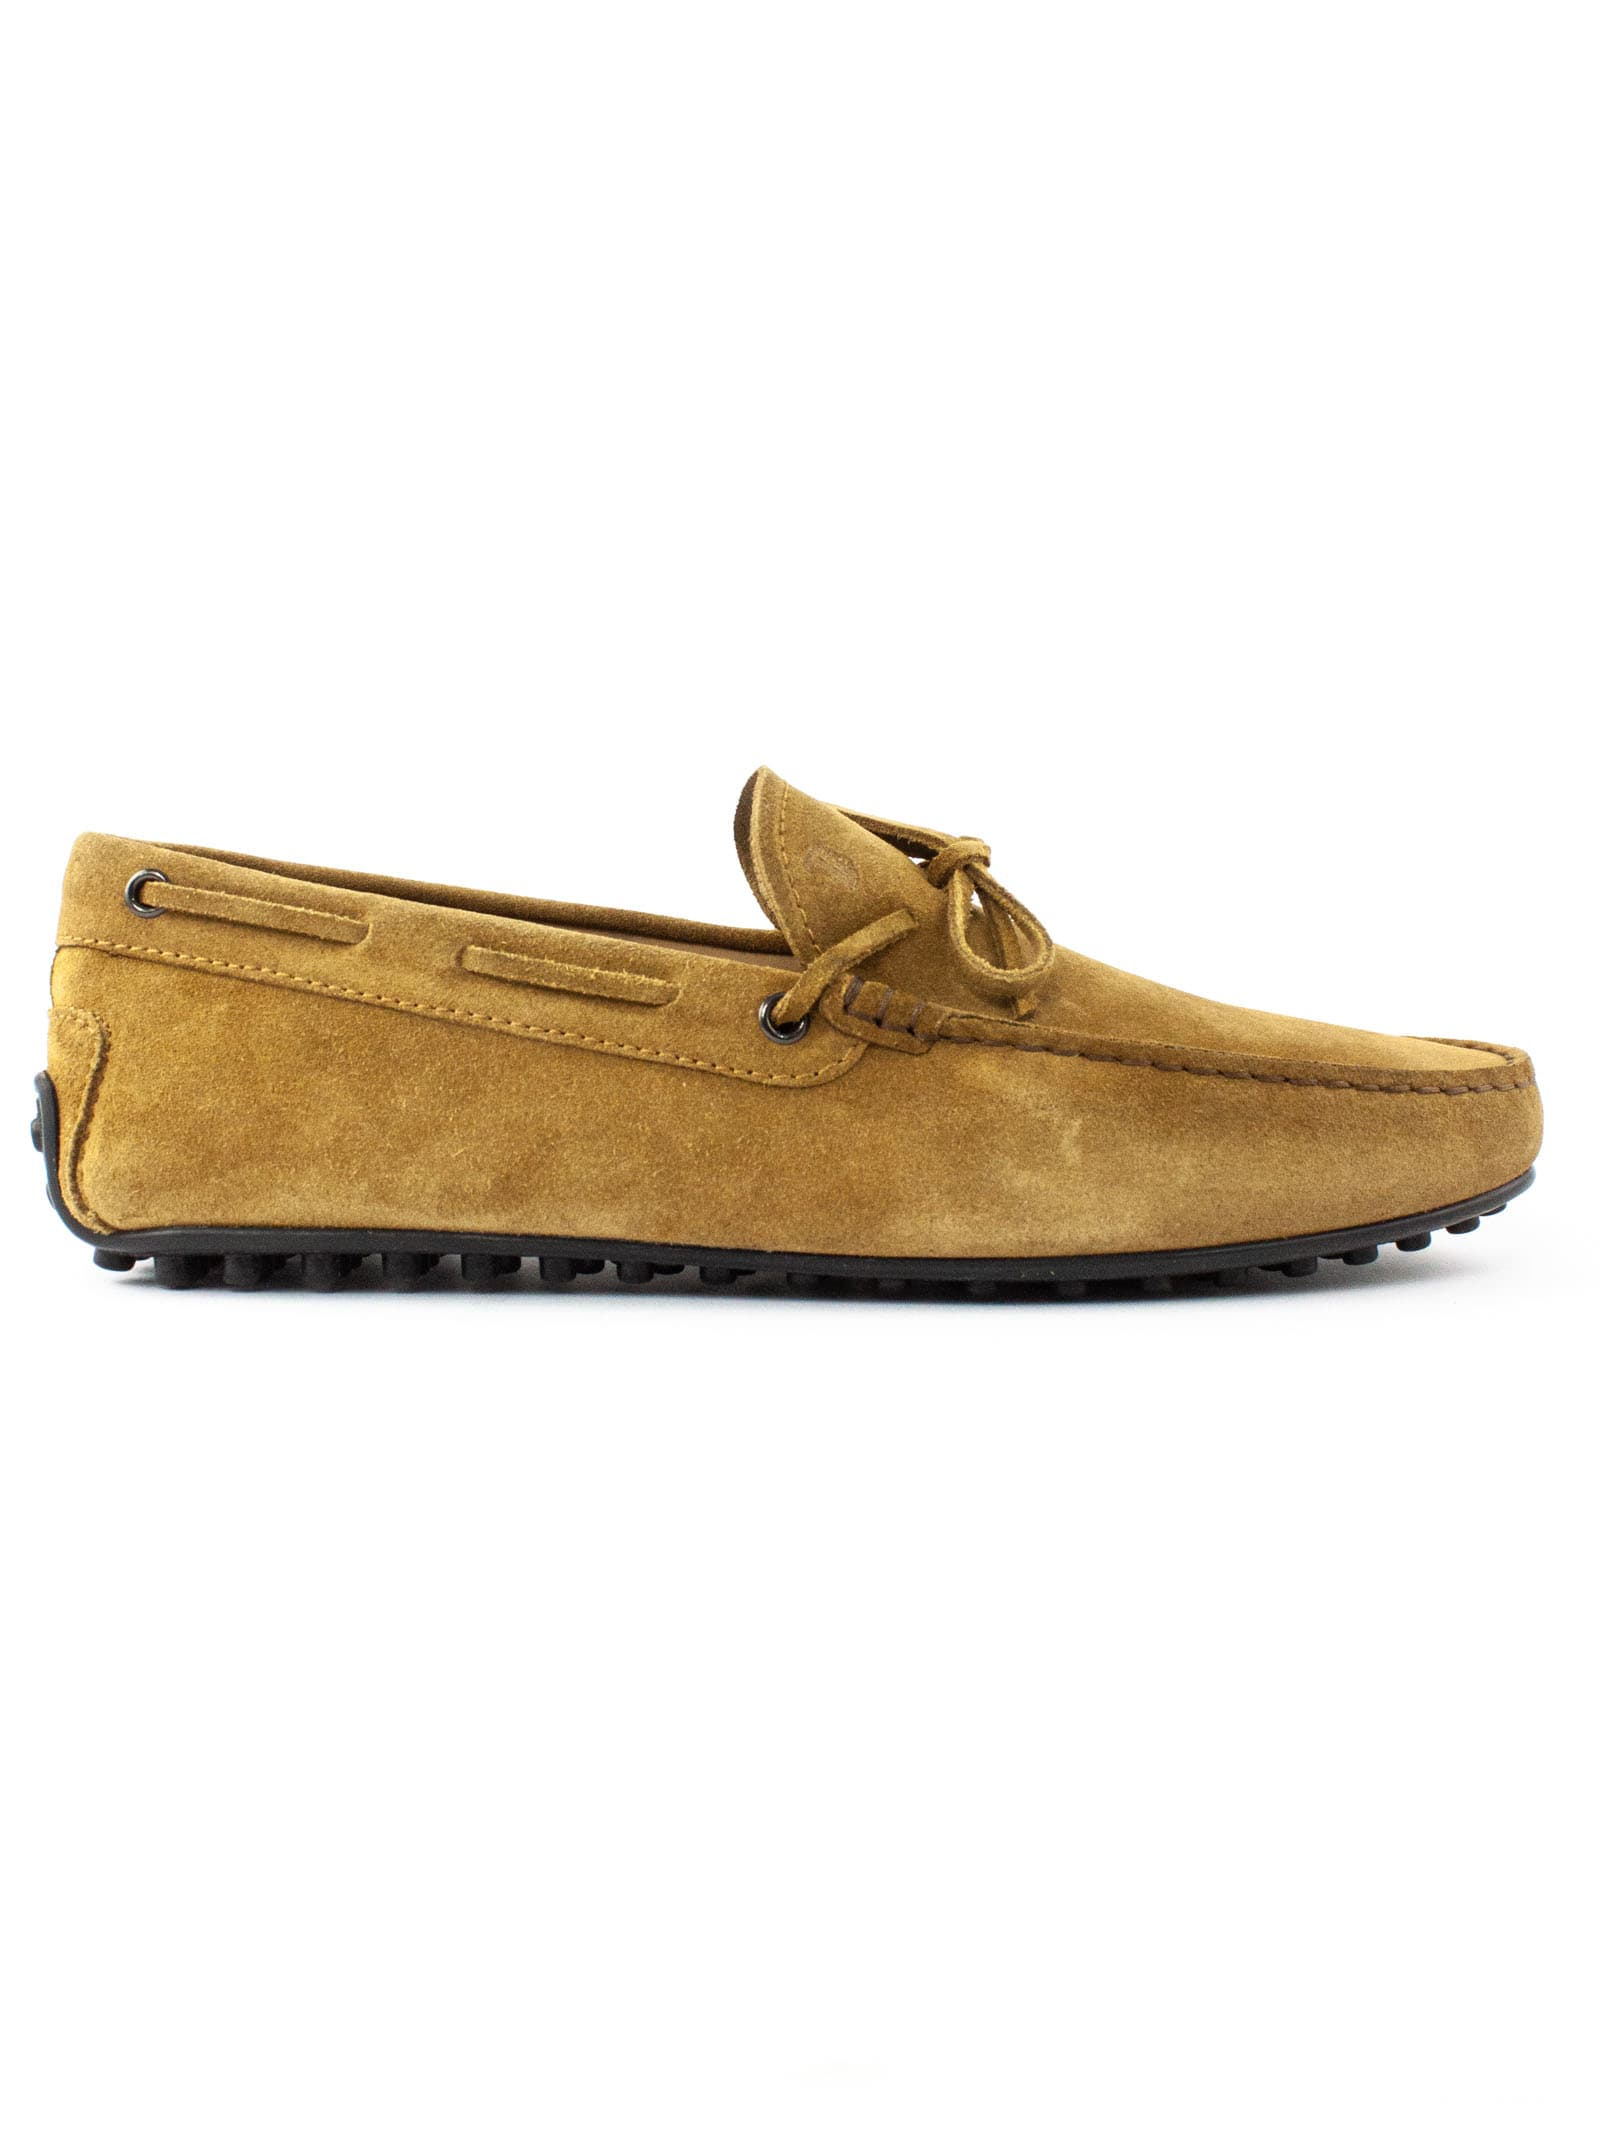 Tods Brown Gommino Driving Shoes